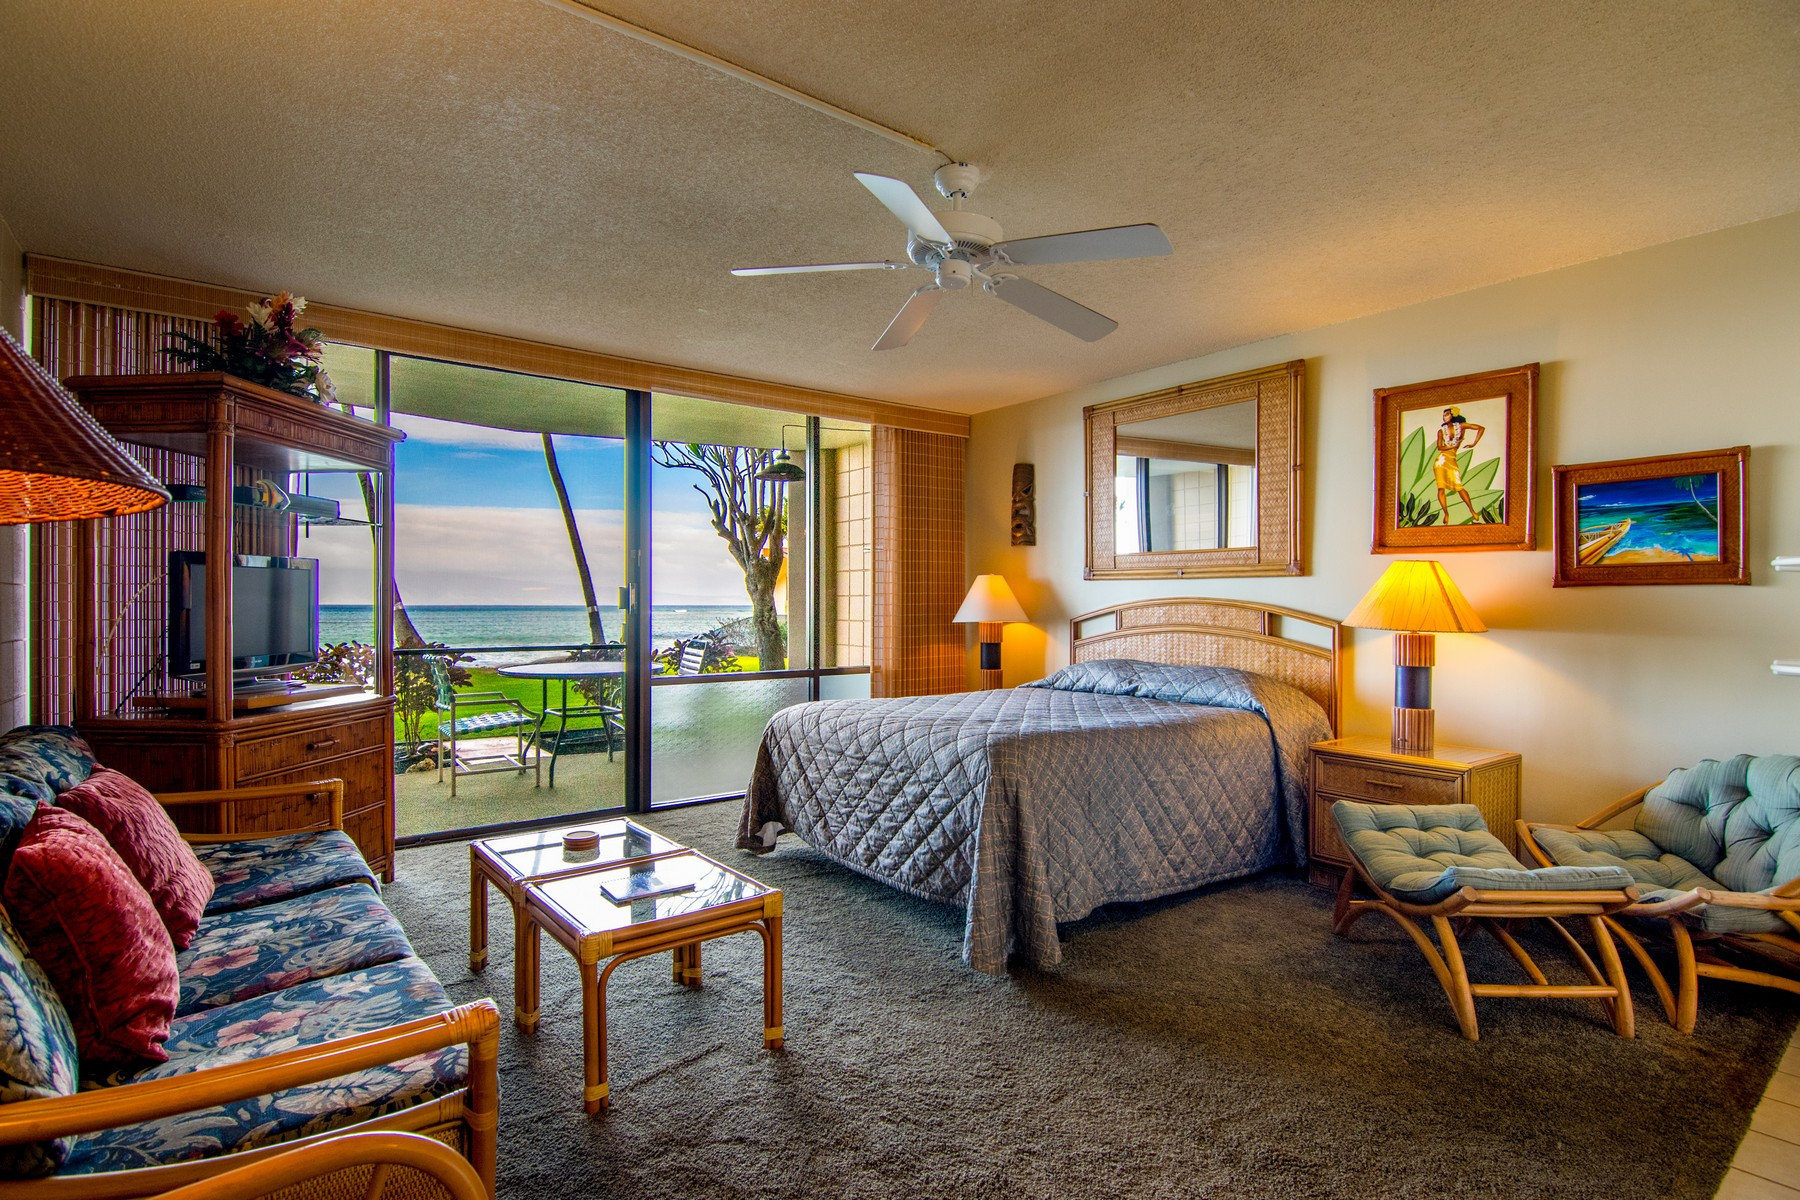 Кондоминиум для того Продажа на Stunning Sunset Views & Direct Ocean Front Condo 4327 Lower Honoapiilani Road, Valley Isle Resort 107 Kahana, Гавайи, 96761 Соединенные Штаты